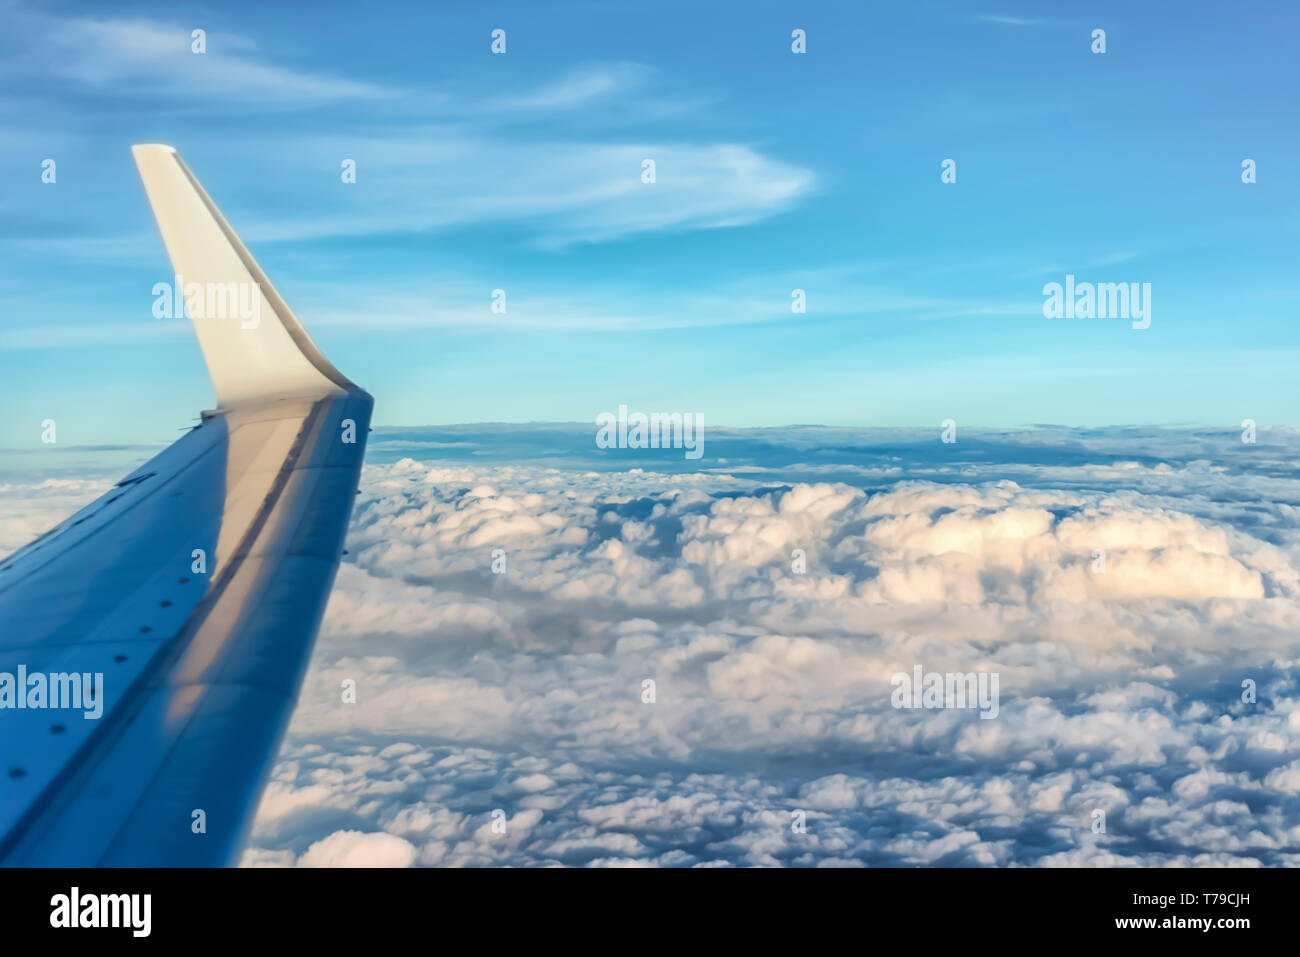 Aerial view of monsoon clouds over India. Cumulonimbus and Cumulus clouds are visible. Wing of the plane used as a foreground element. - Stock Image